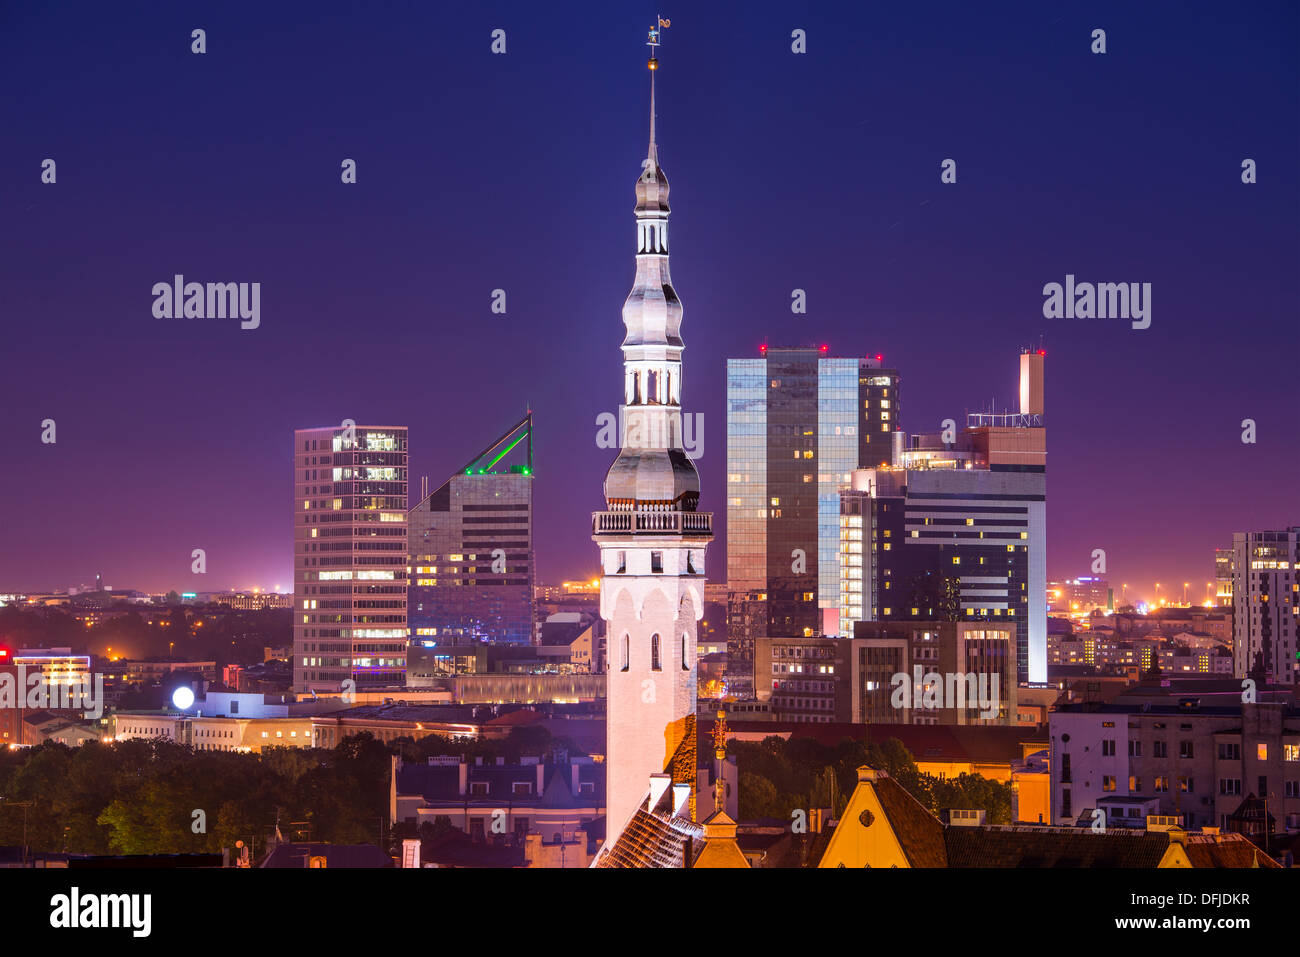 Skyline of Tallinn, Estonia with the old city and the new city. - Stock Image